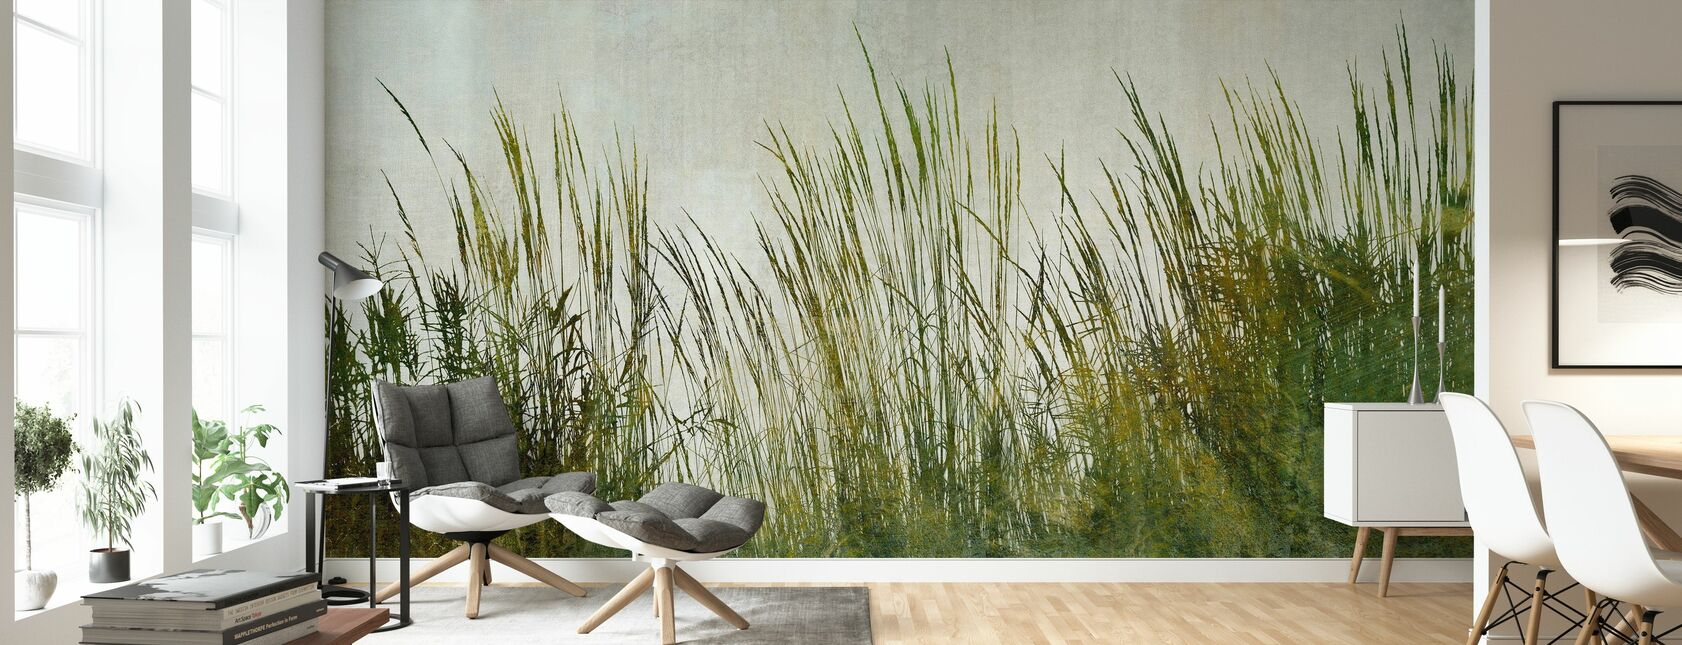 Green Grass Silhouette - Wallpaper - Living Room